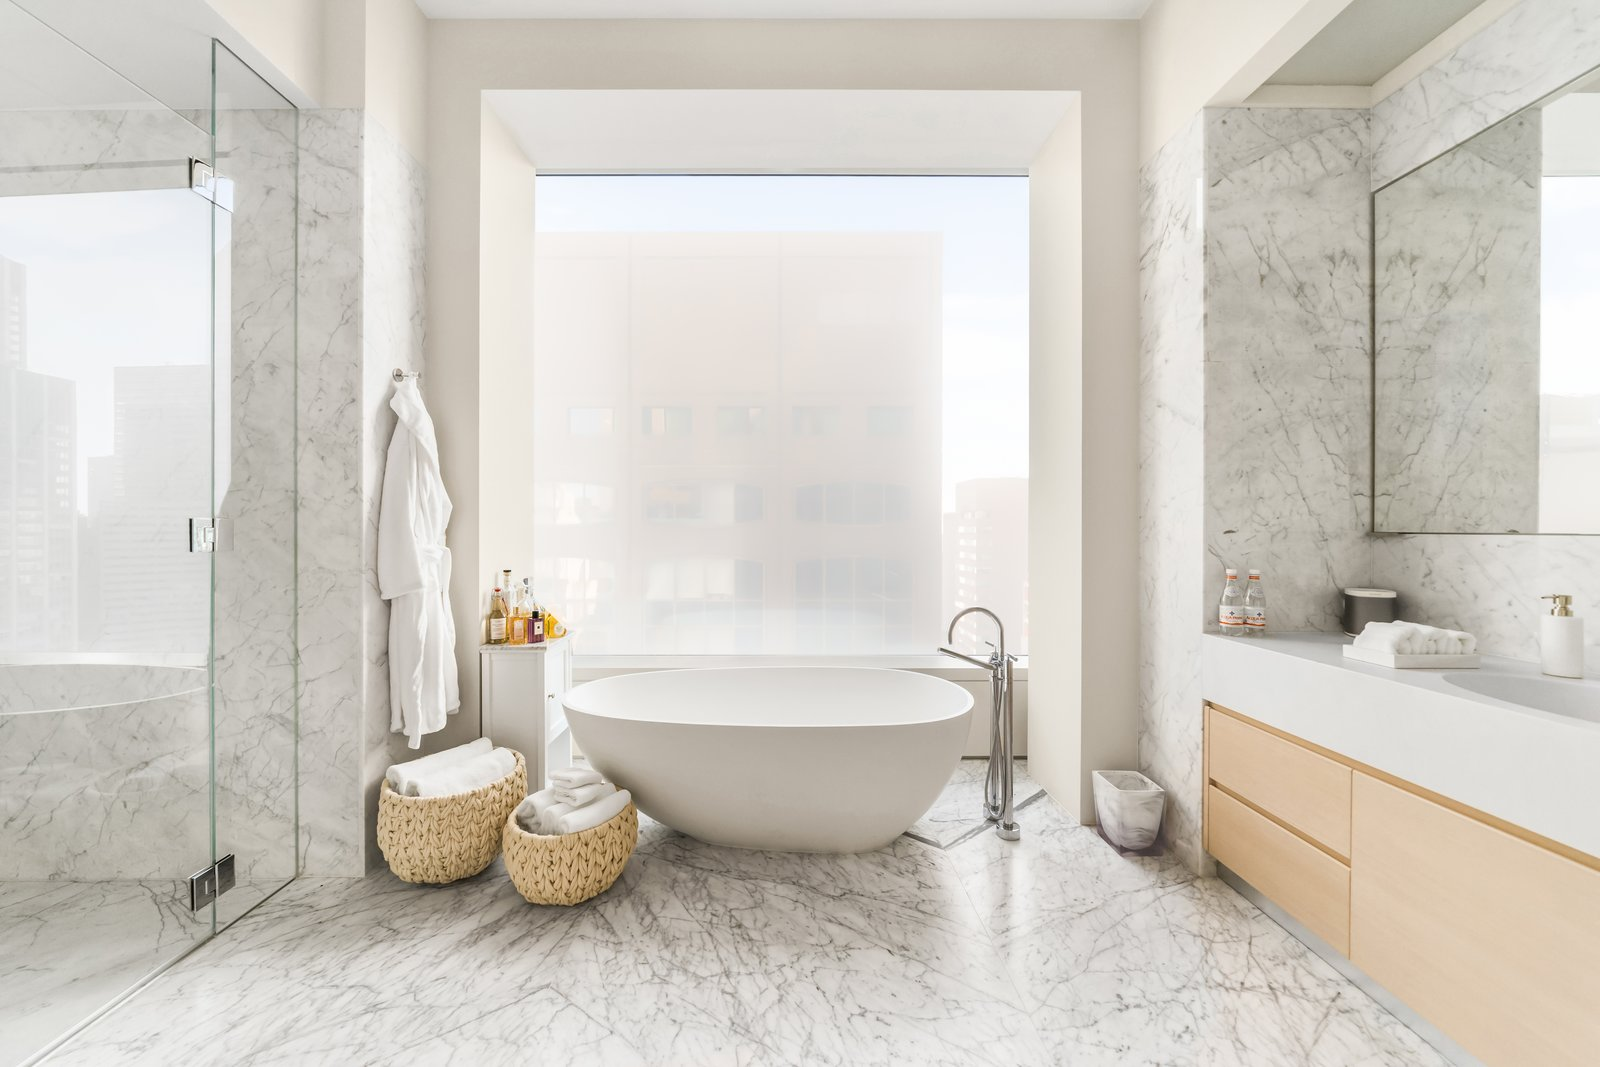 J.Lo and A-Rod's 432 Park Avenue apartment bathroom